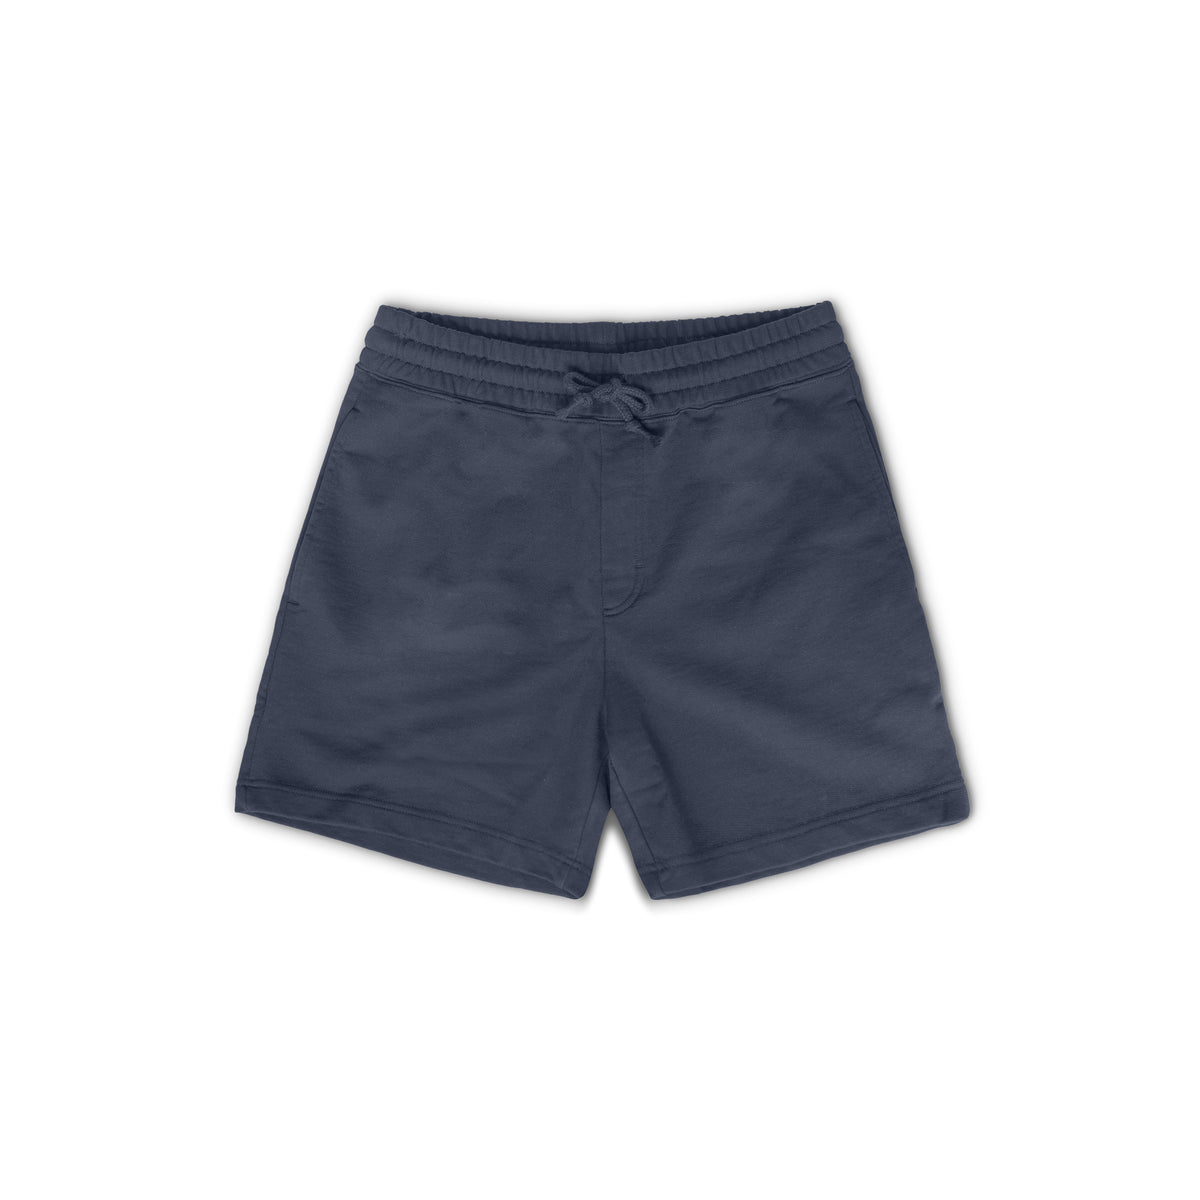 Sweatpant Short Navy